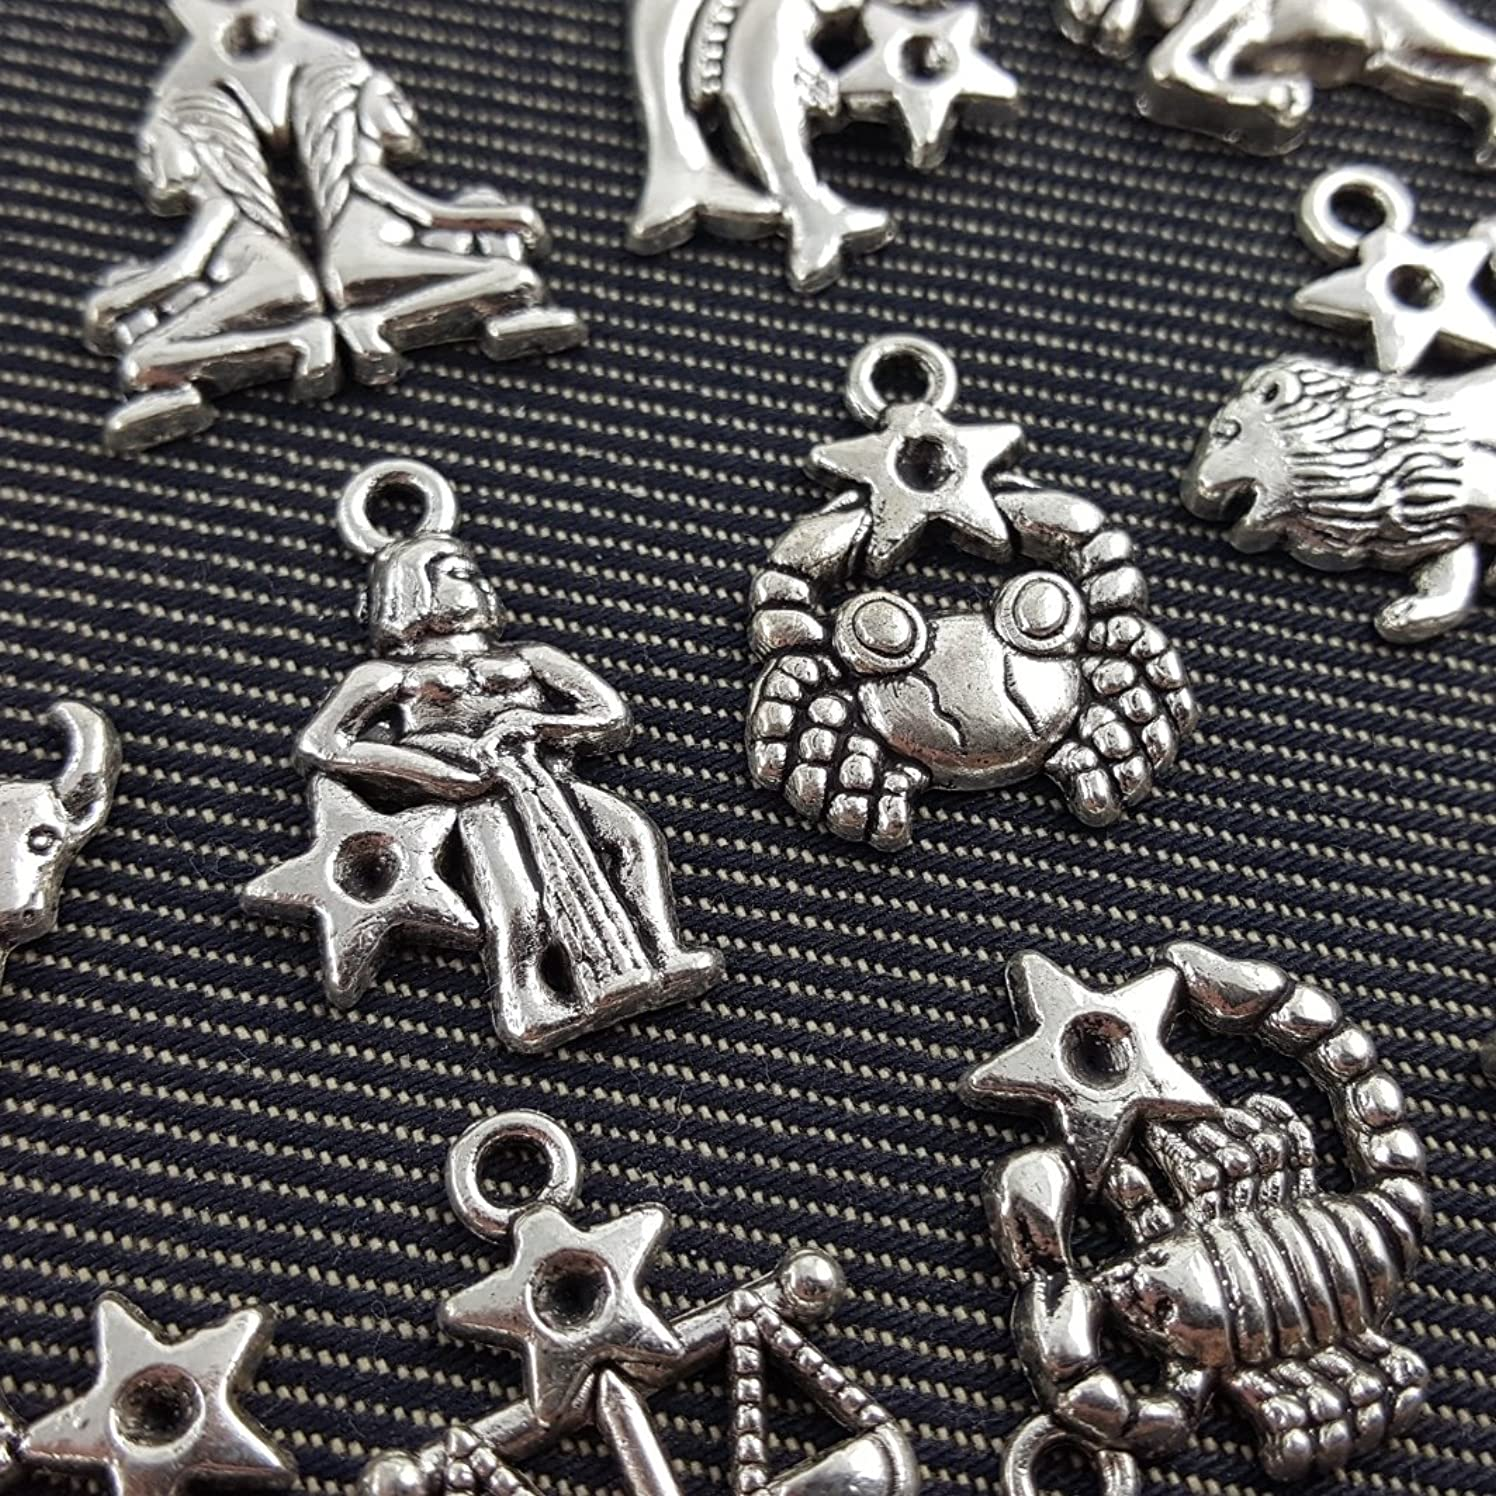 12 Antique Silver Plated Zodiac all Constellation Charm Zinc Alloy Pendant (NS523 M002)